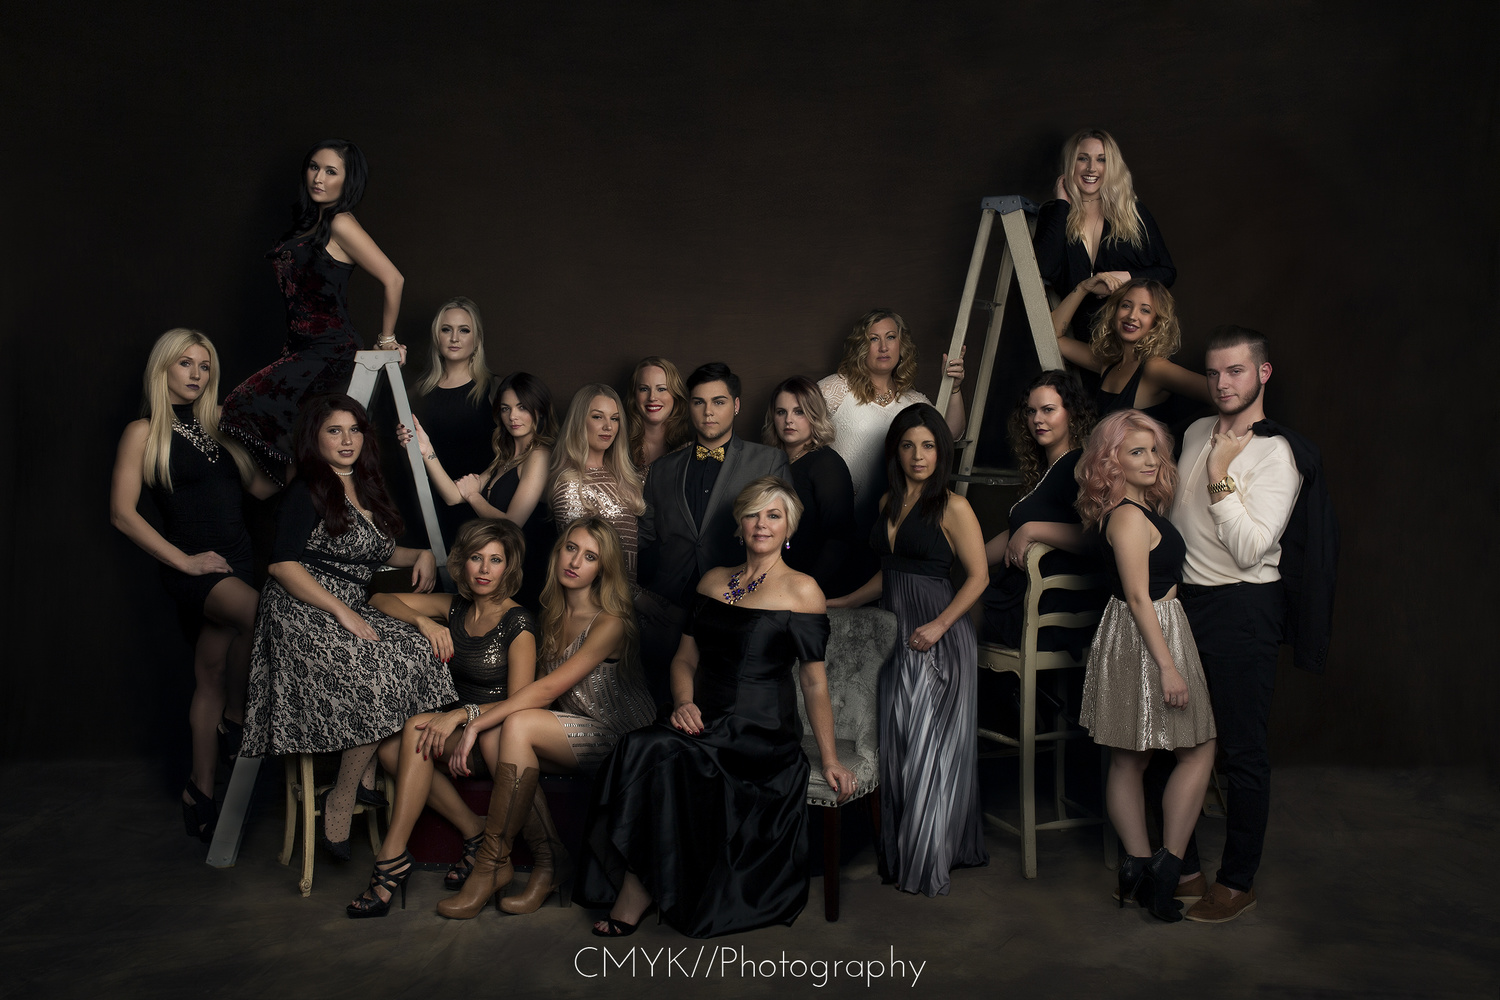 Group Composites How To Get The Shot Fstoppers